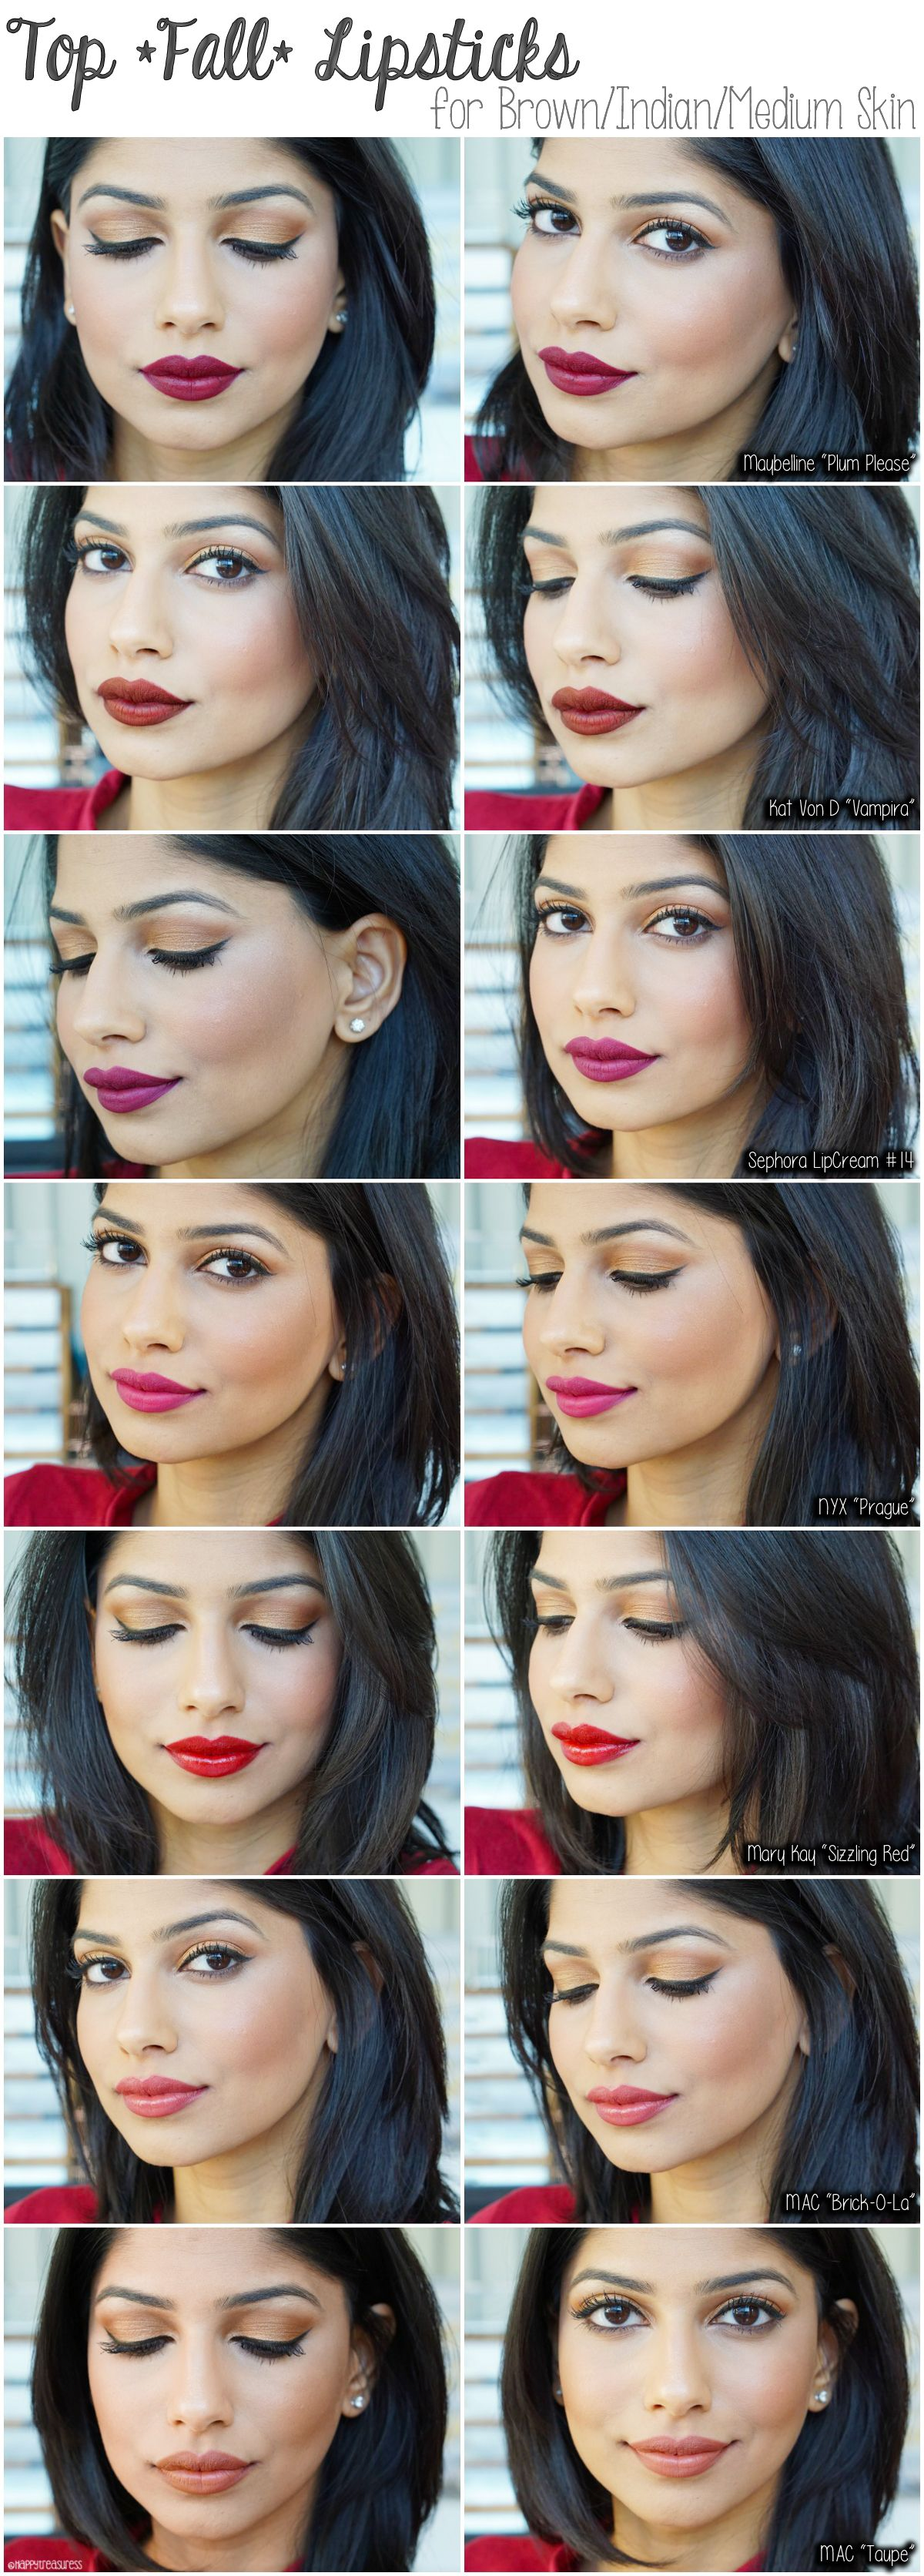 fall lipsticks for brown/medium/indian skin. favorite fall